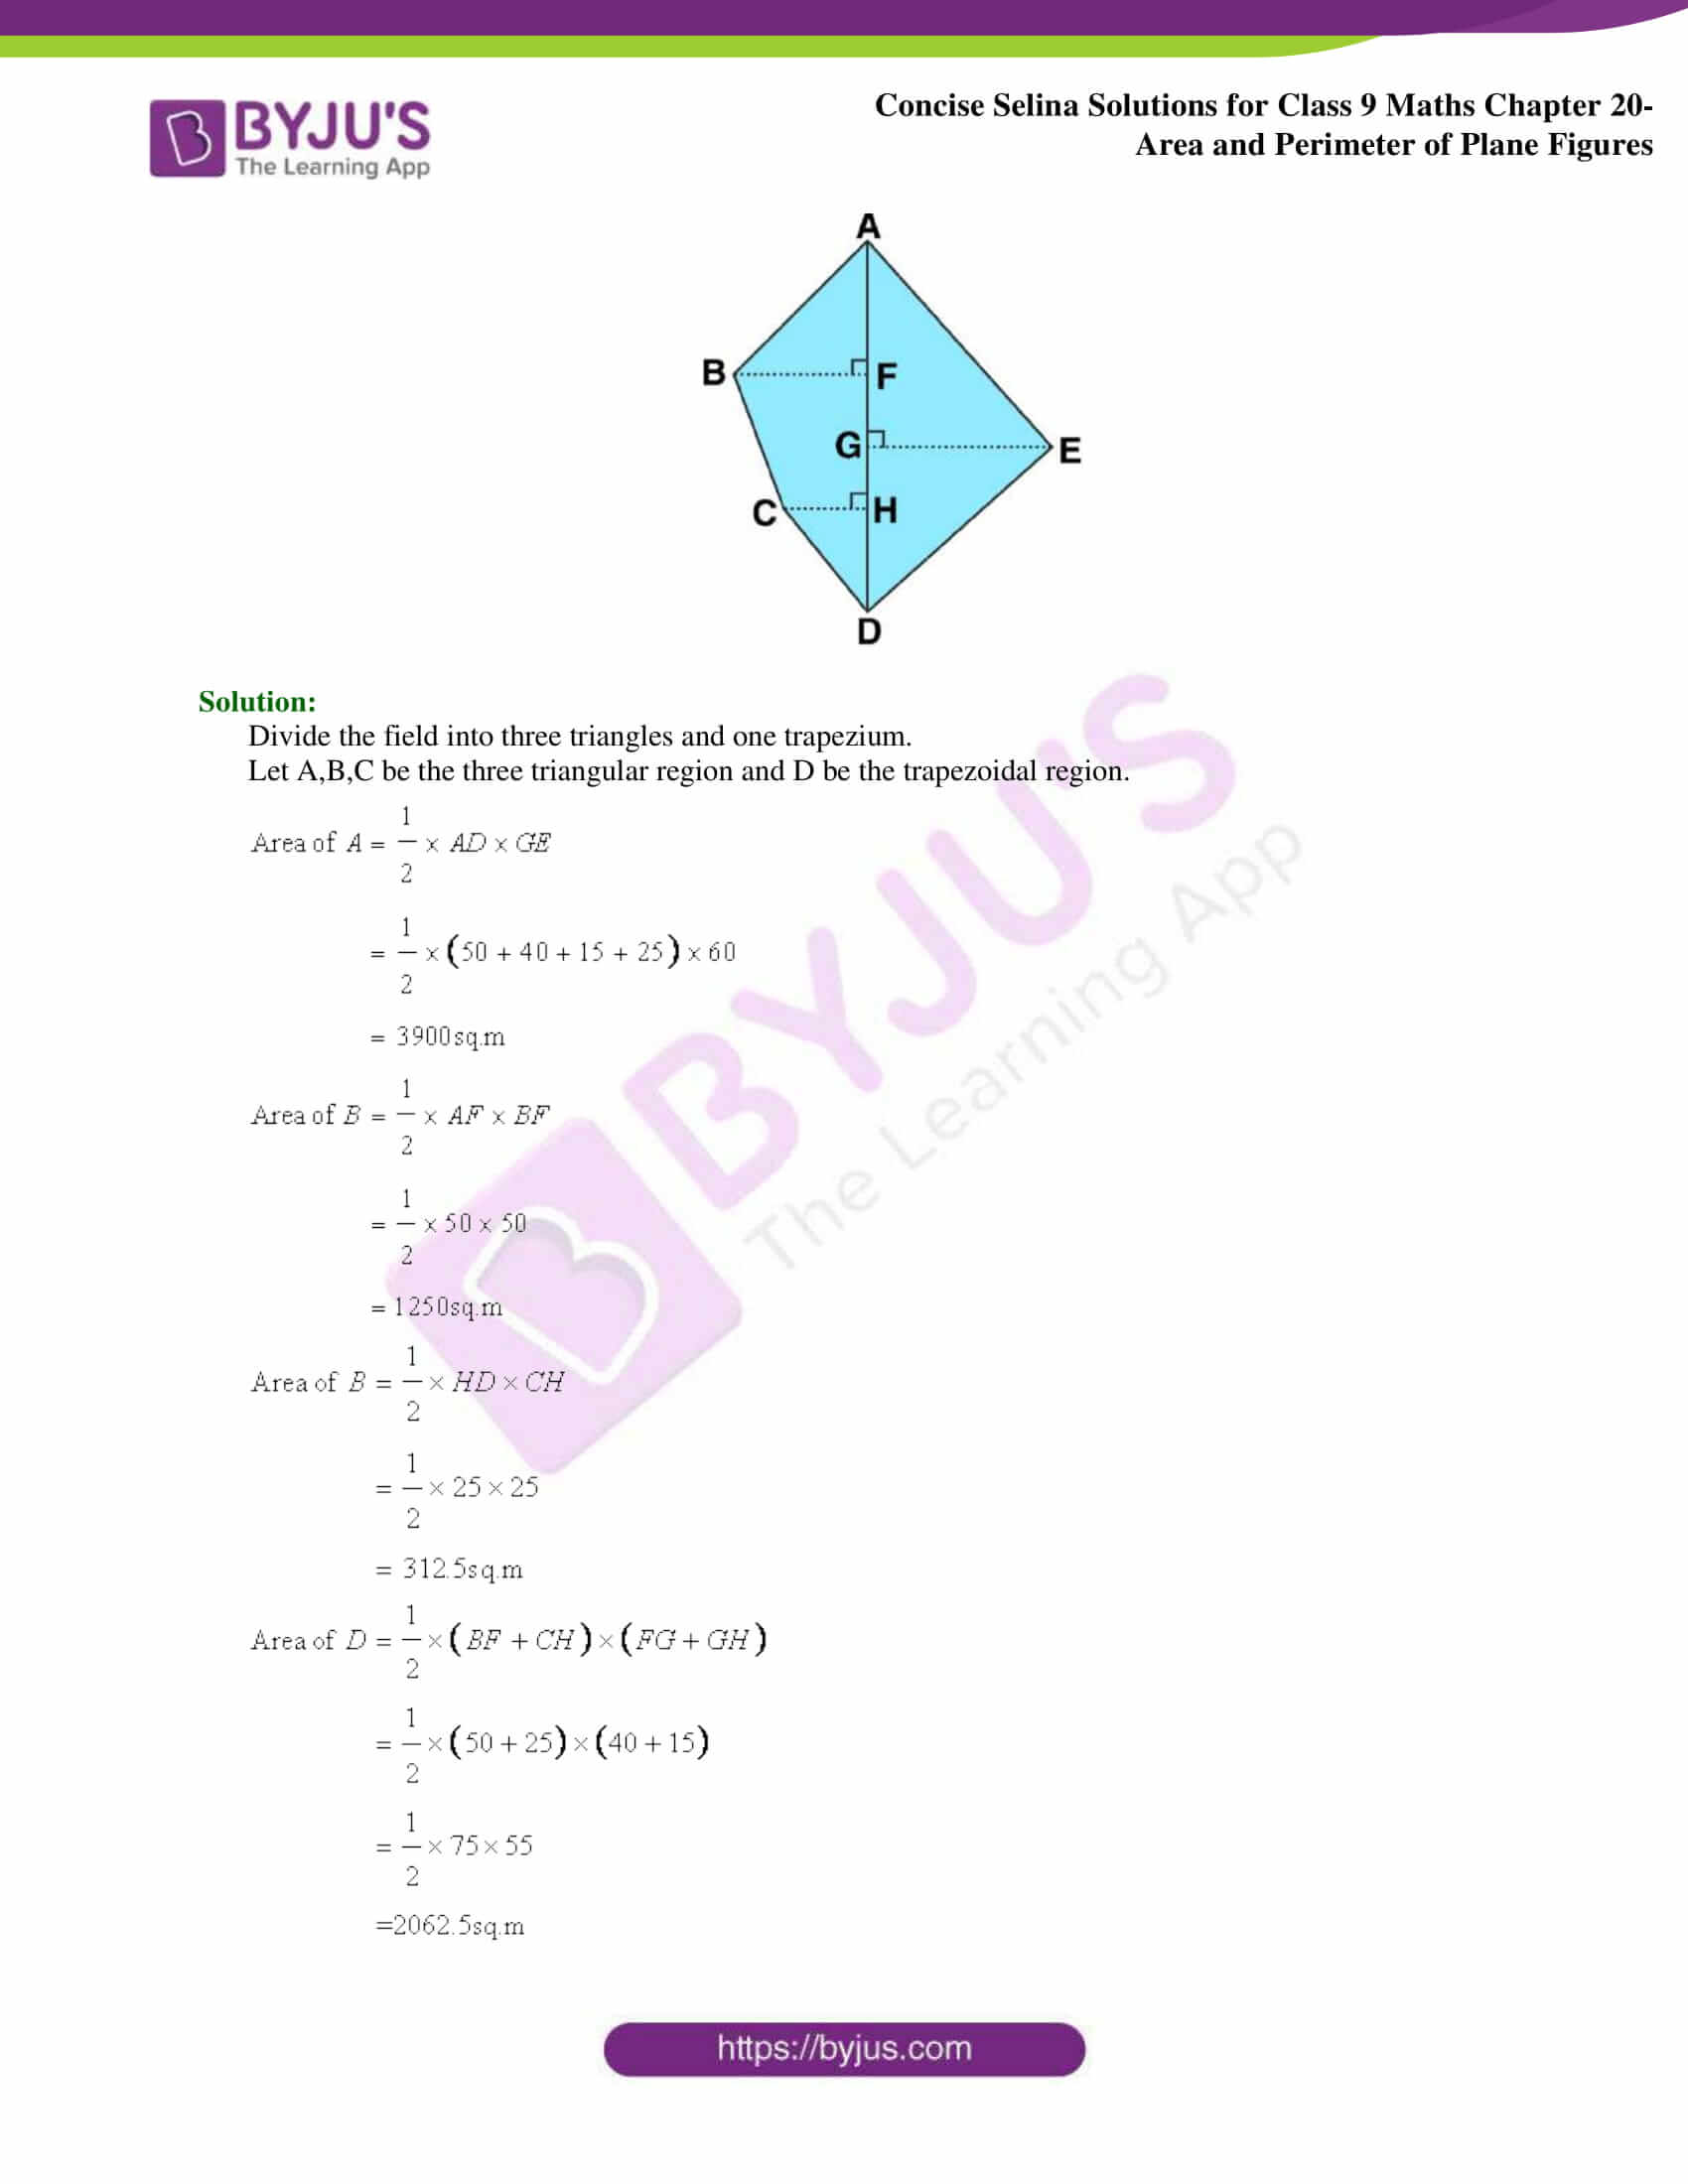 Concise Selina Solutions Class 9 Maths Chapter 20 Area and Perimeter of Plane part 23